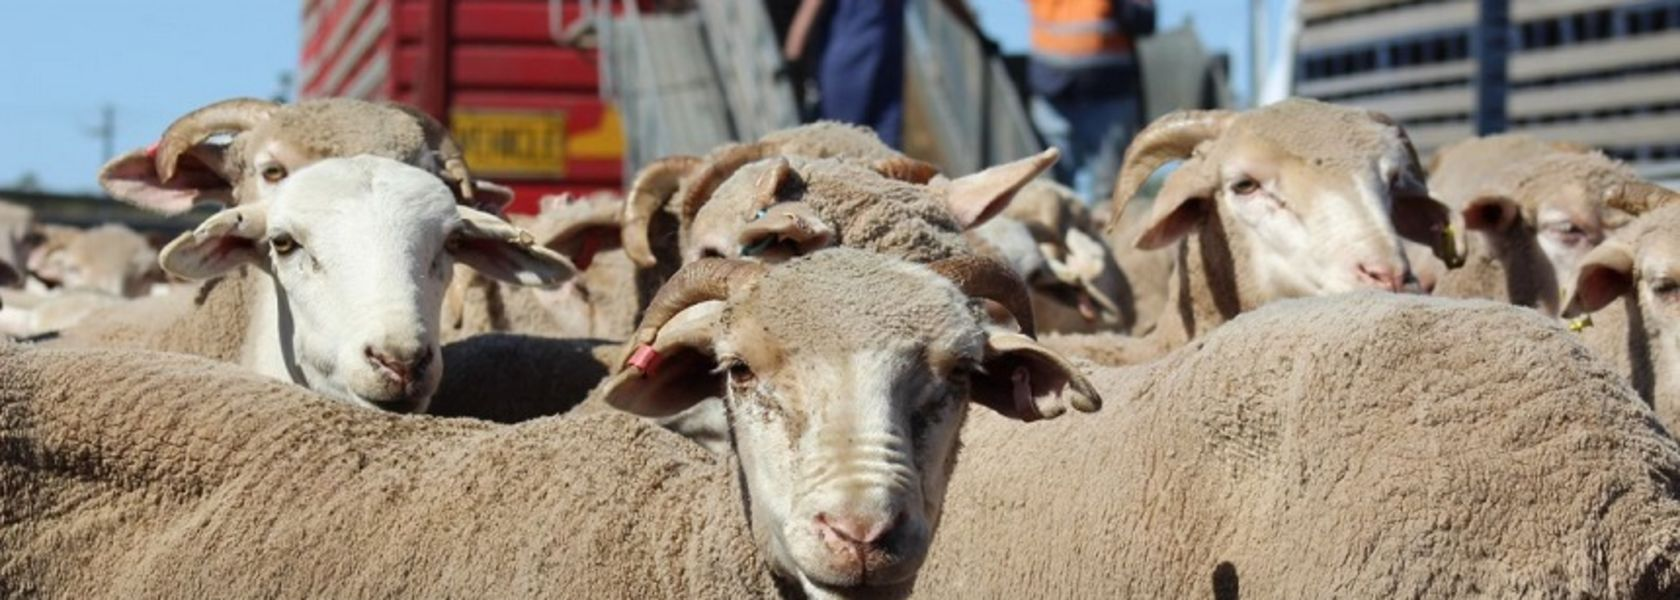 Sheep shipment refused travel to Middle East